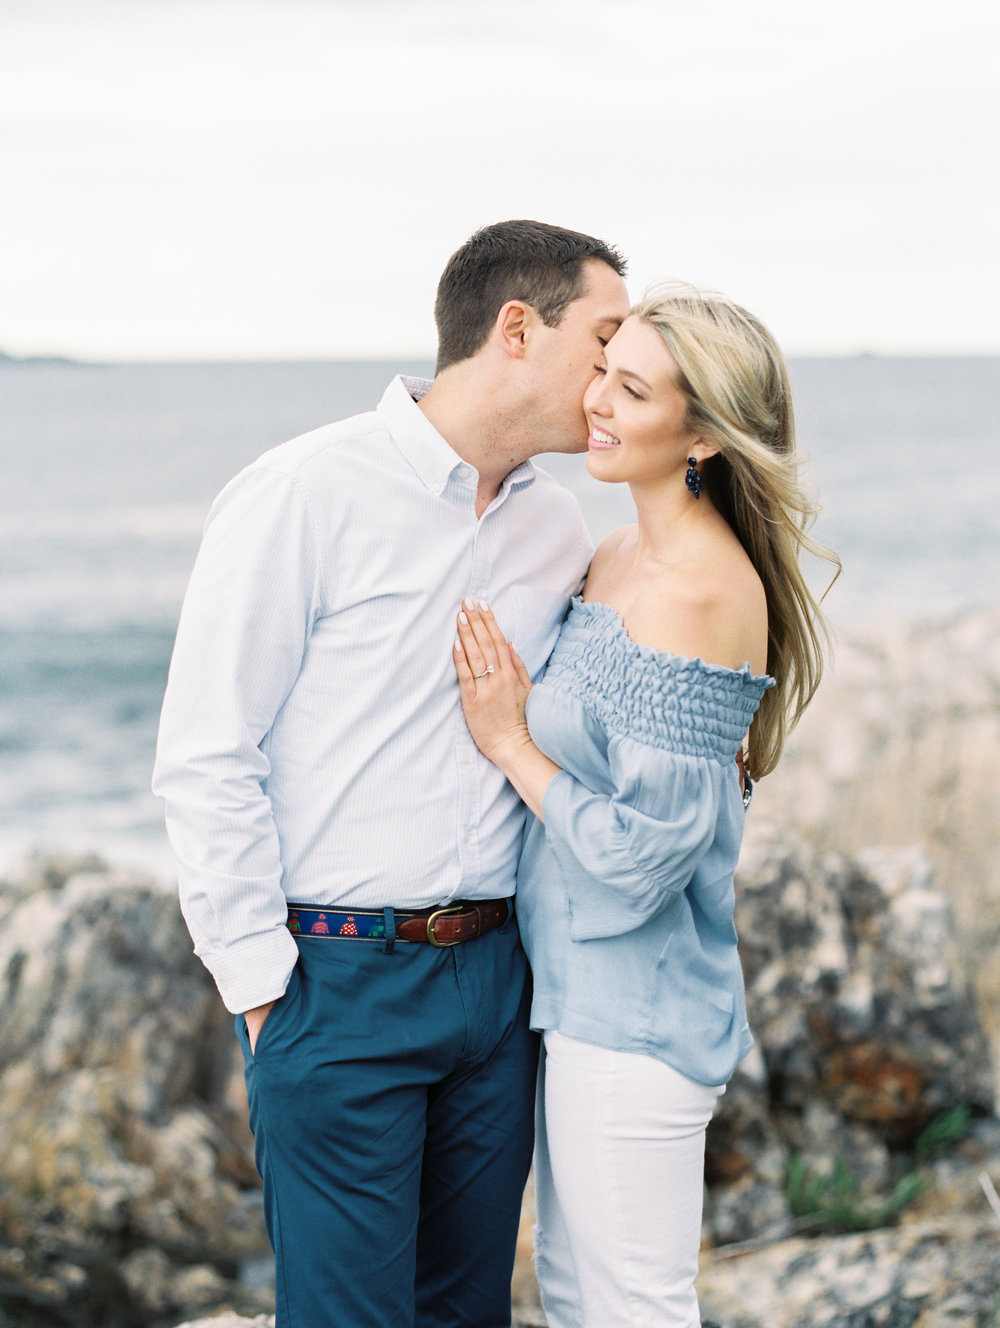 Weekday Engagement Collection | $1,250* - Up to 1.5 hours of photographyOnline gallery with download of imagesComplimentary travel within Manhattan or Albany, NY area. A quote can be provided for other locations.